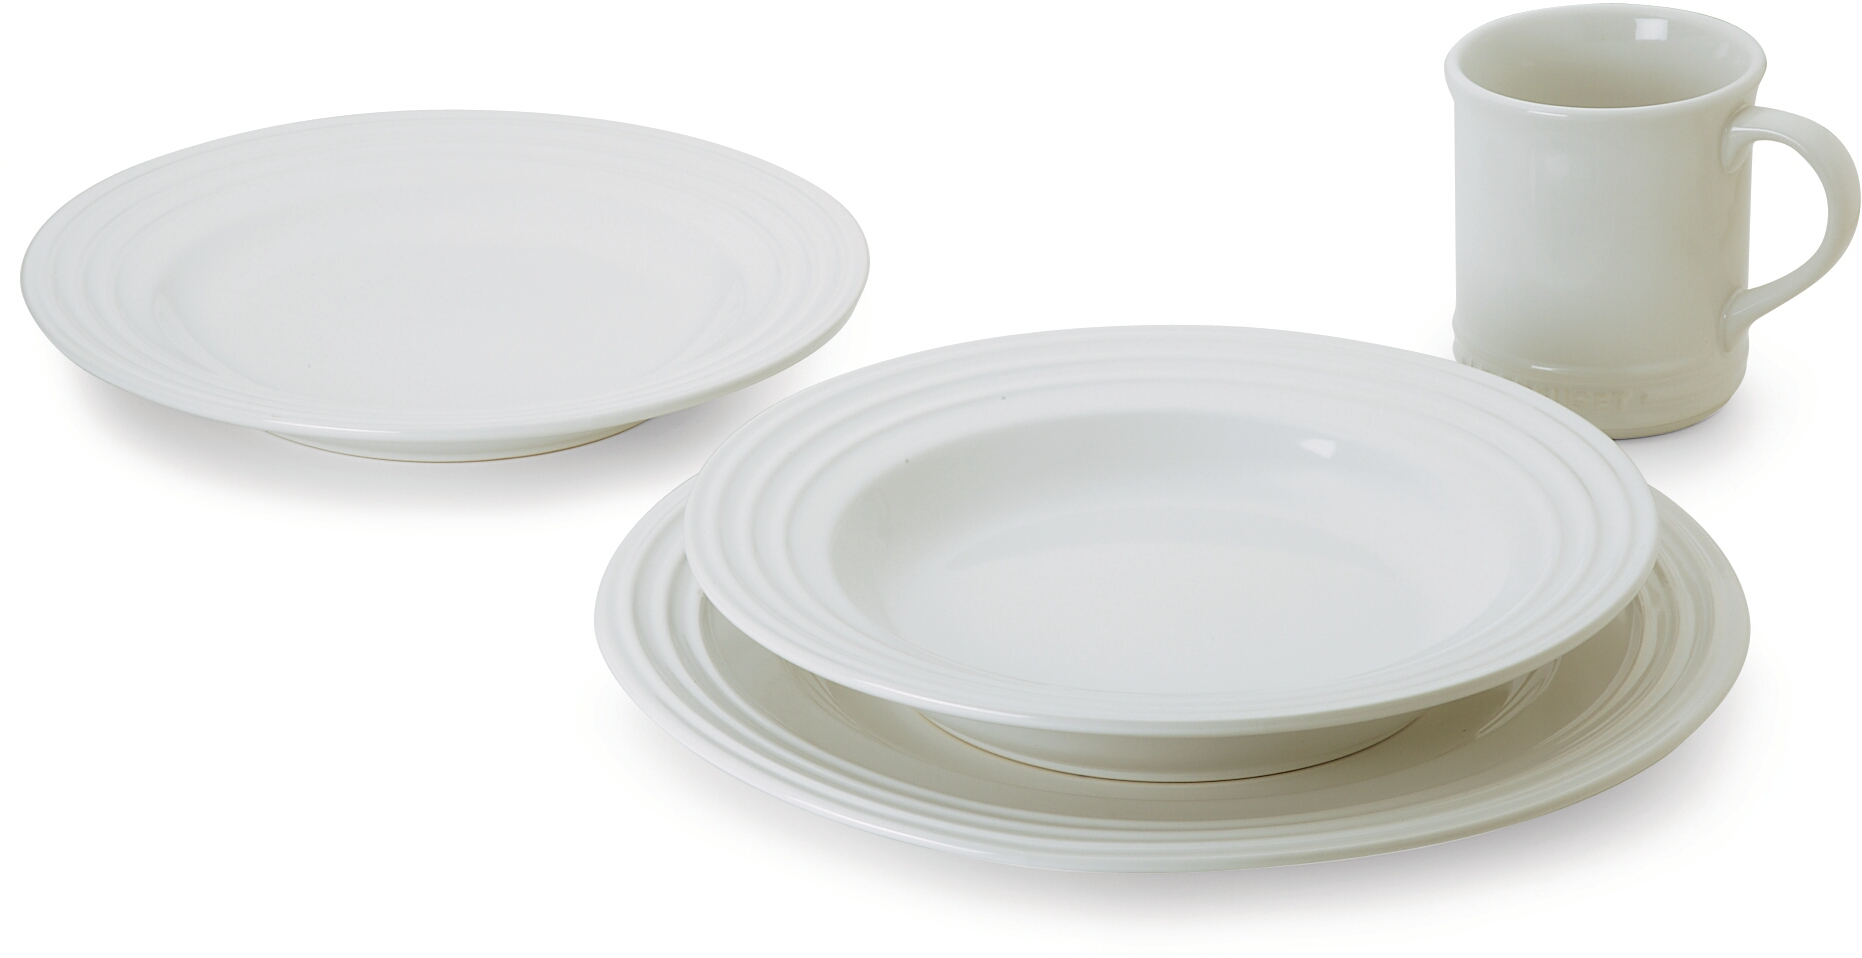 Le Creuset 16 Piece White Stoneware Dinnerware Set, Service for 4